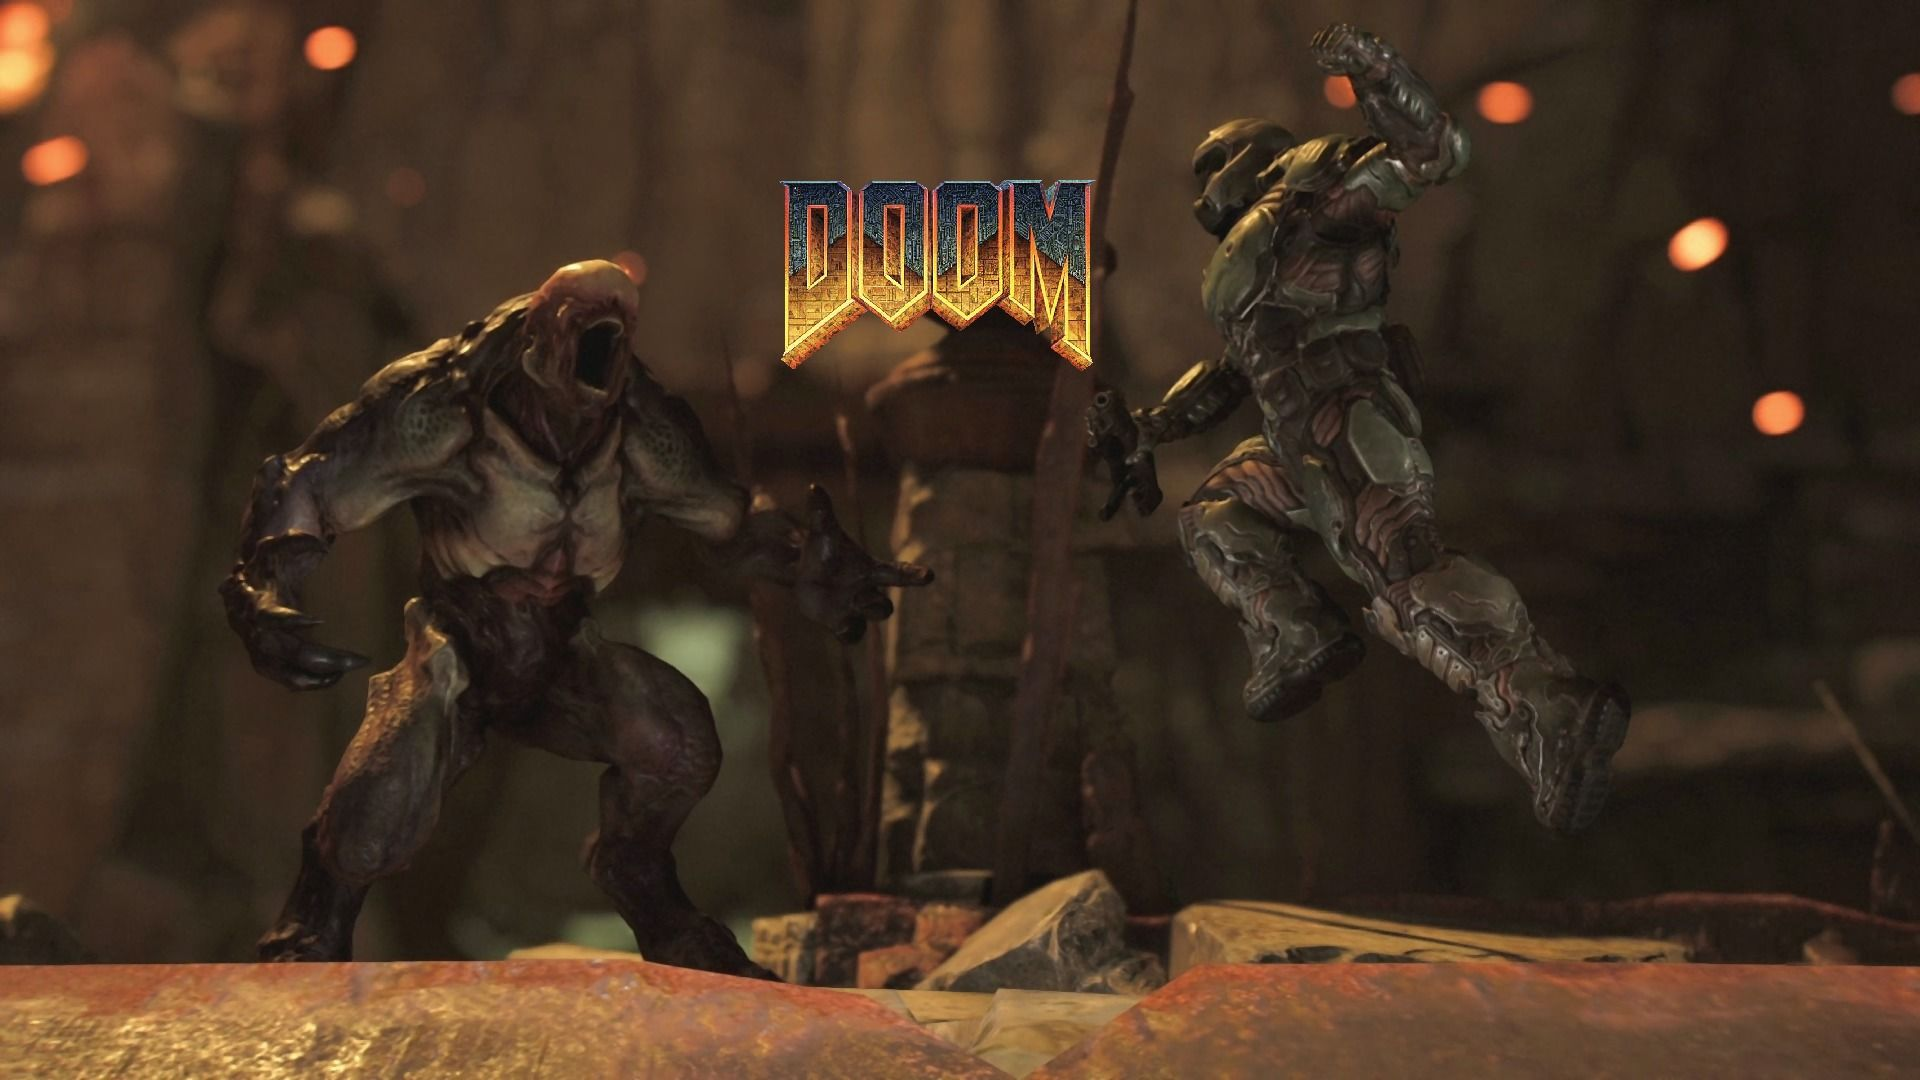 Doom Wallpapers Wallpaperpulse 1920 1200 Doom 2 Wallpapers 40 Wallpapers Adorable Wallpapers Hd Wallpaper Defense Of The Ancients Art